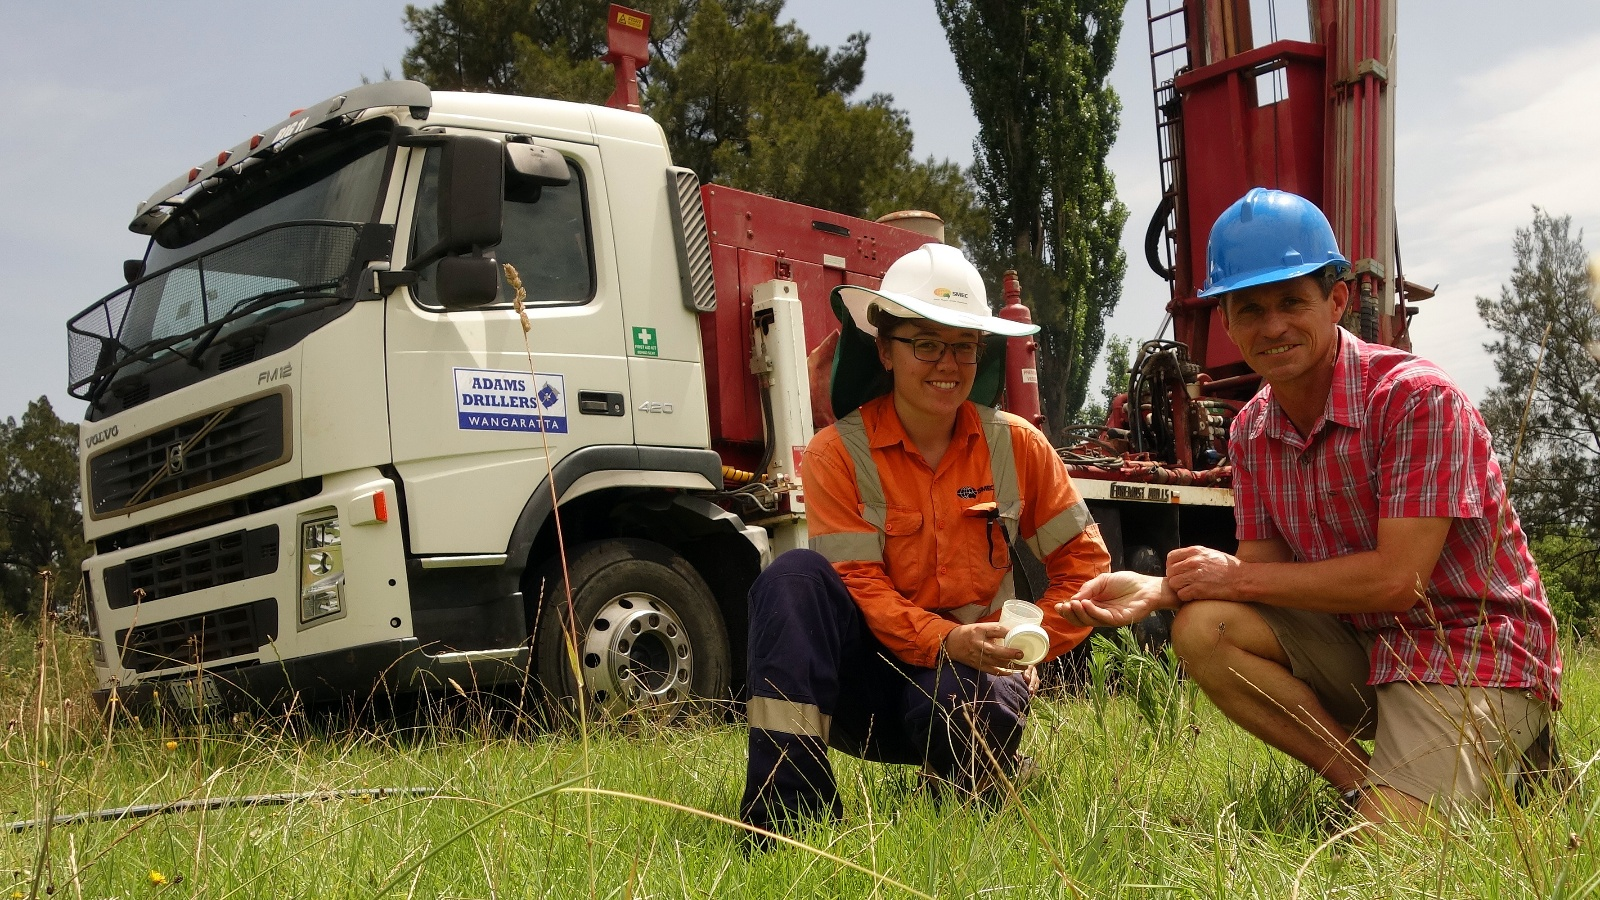 Geologist Ingrid Farr and Bega Valley Shire Council Water Resources Coordinator Ken McLeod sampling sediment from a drilled bore at the Bega borefield.